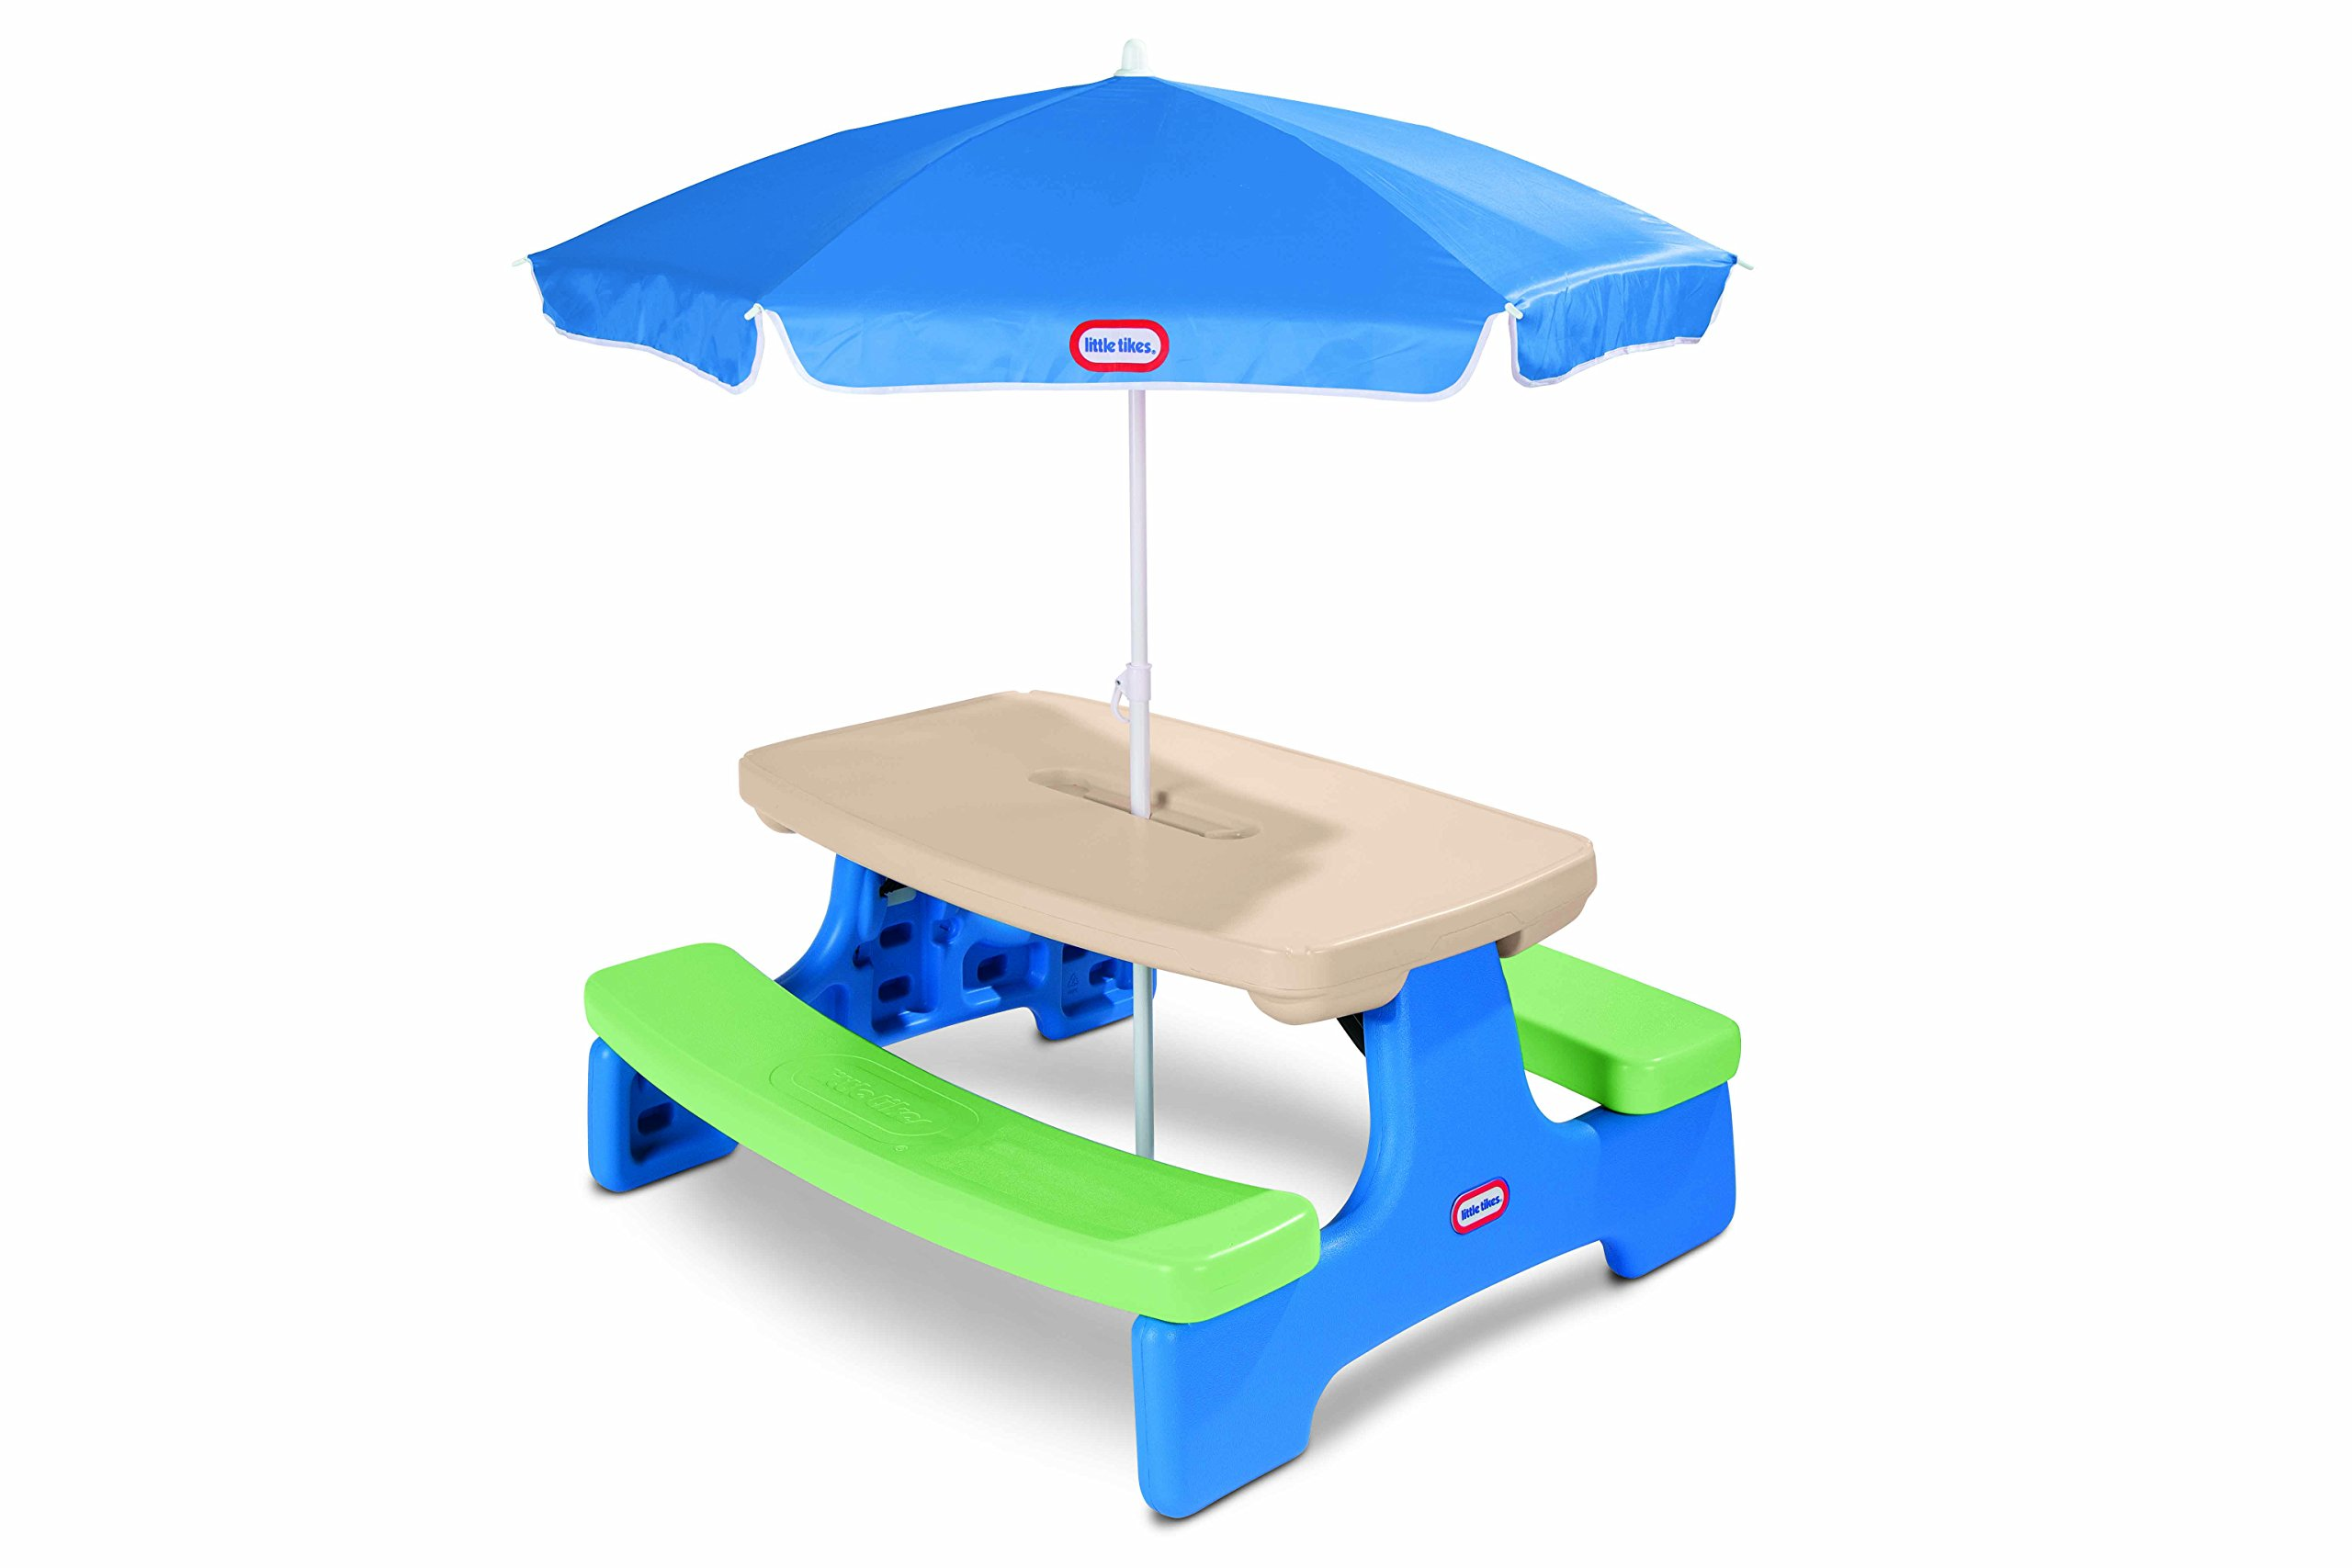 Little Tikes Easy Store Picnic Table with Umbrella by Little Tikes